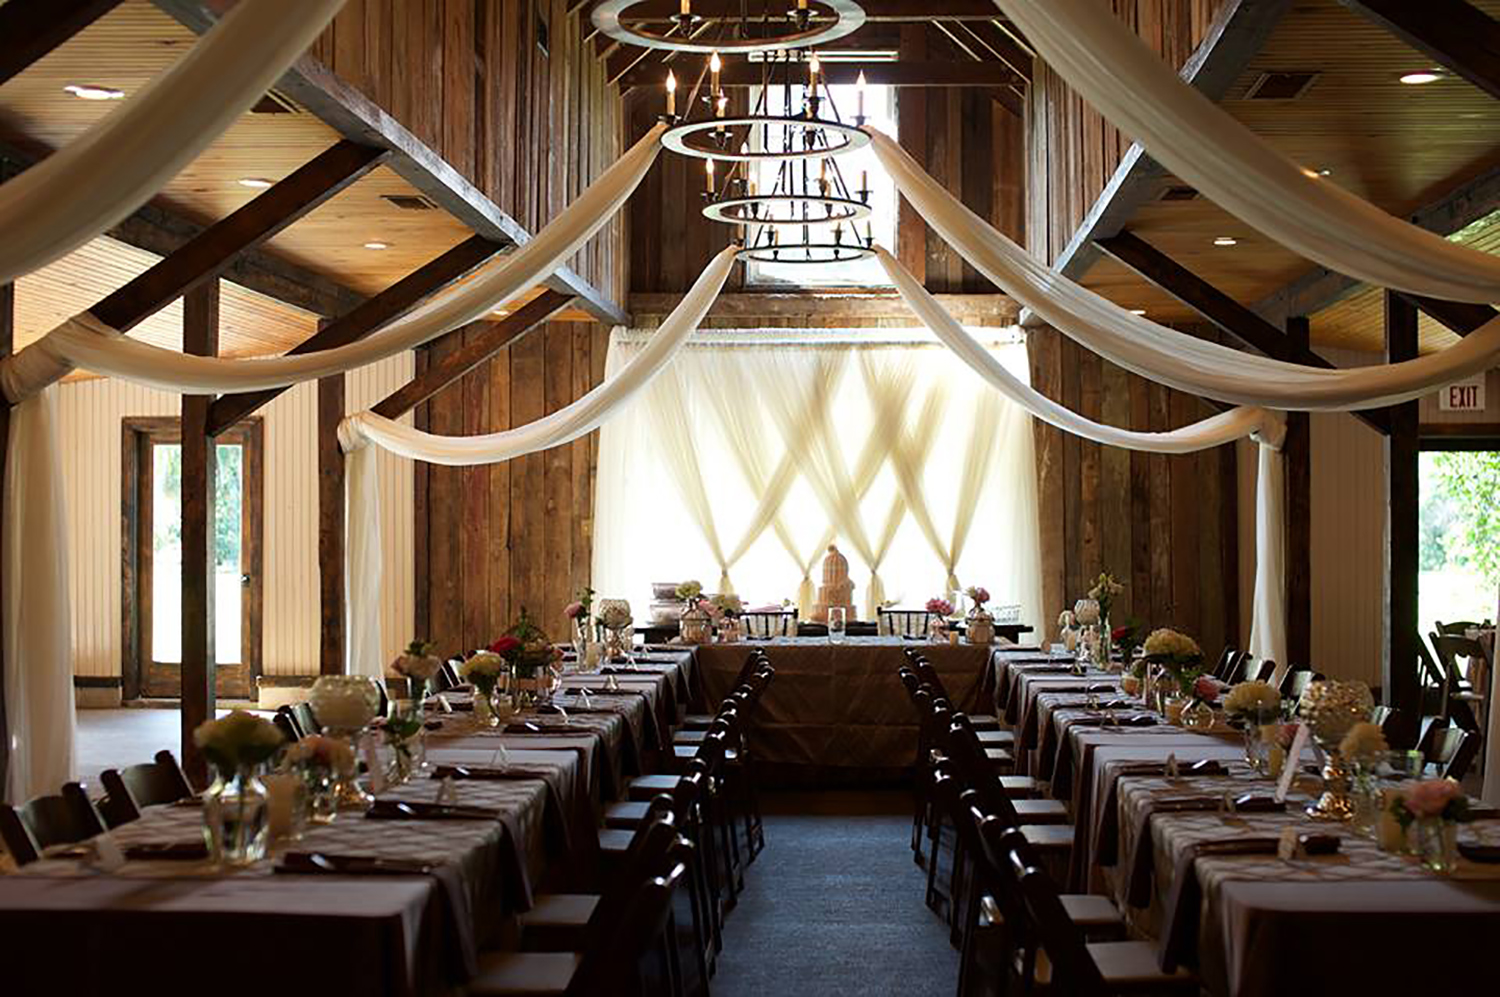 Braided Pipe and Draping Design